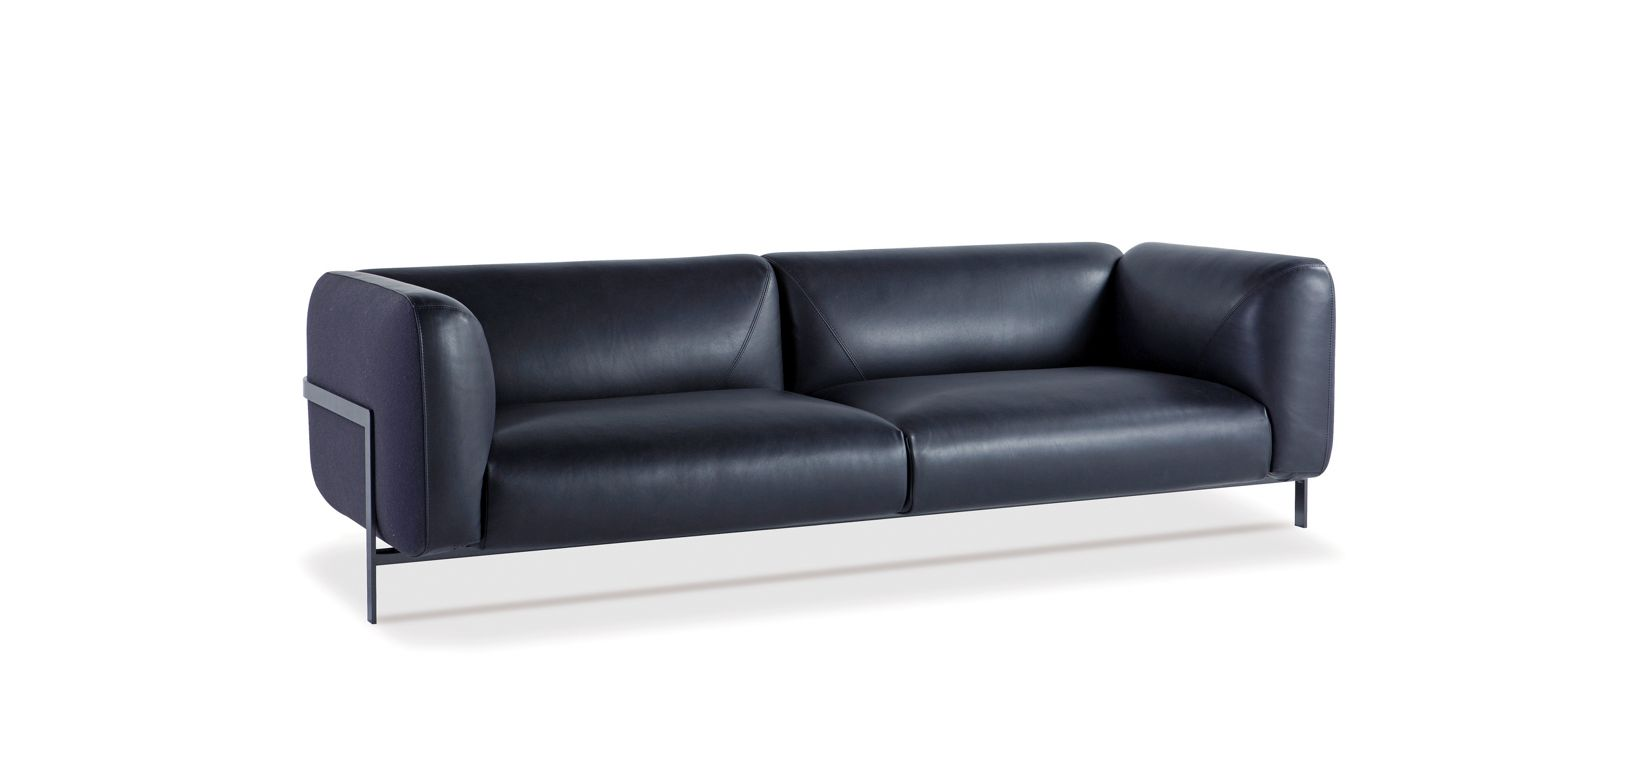 gro es 3 sitzer sofa lobby roche bobois. Black Bedroom Furniture Sets. Home Design Ideas